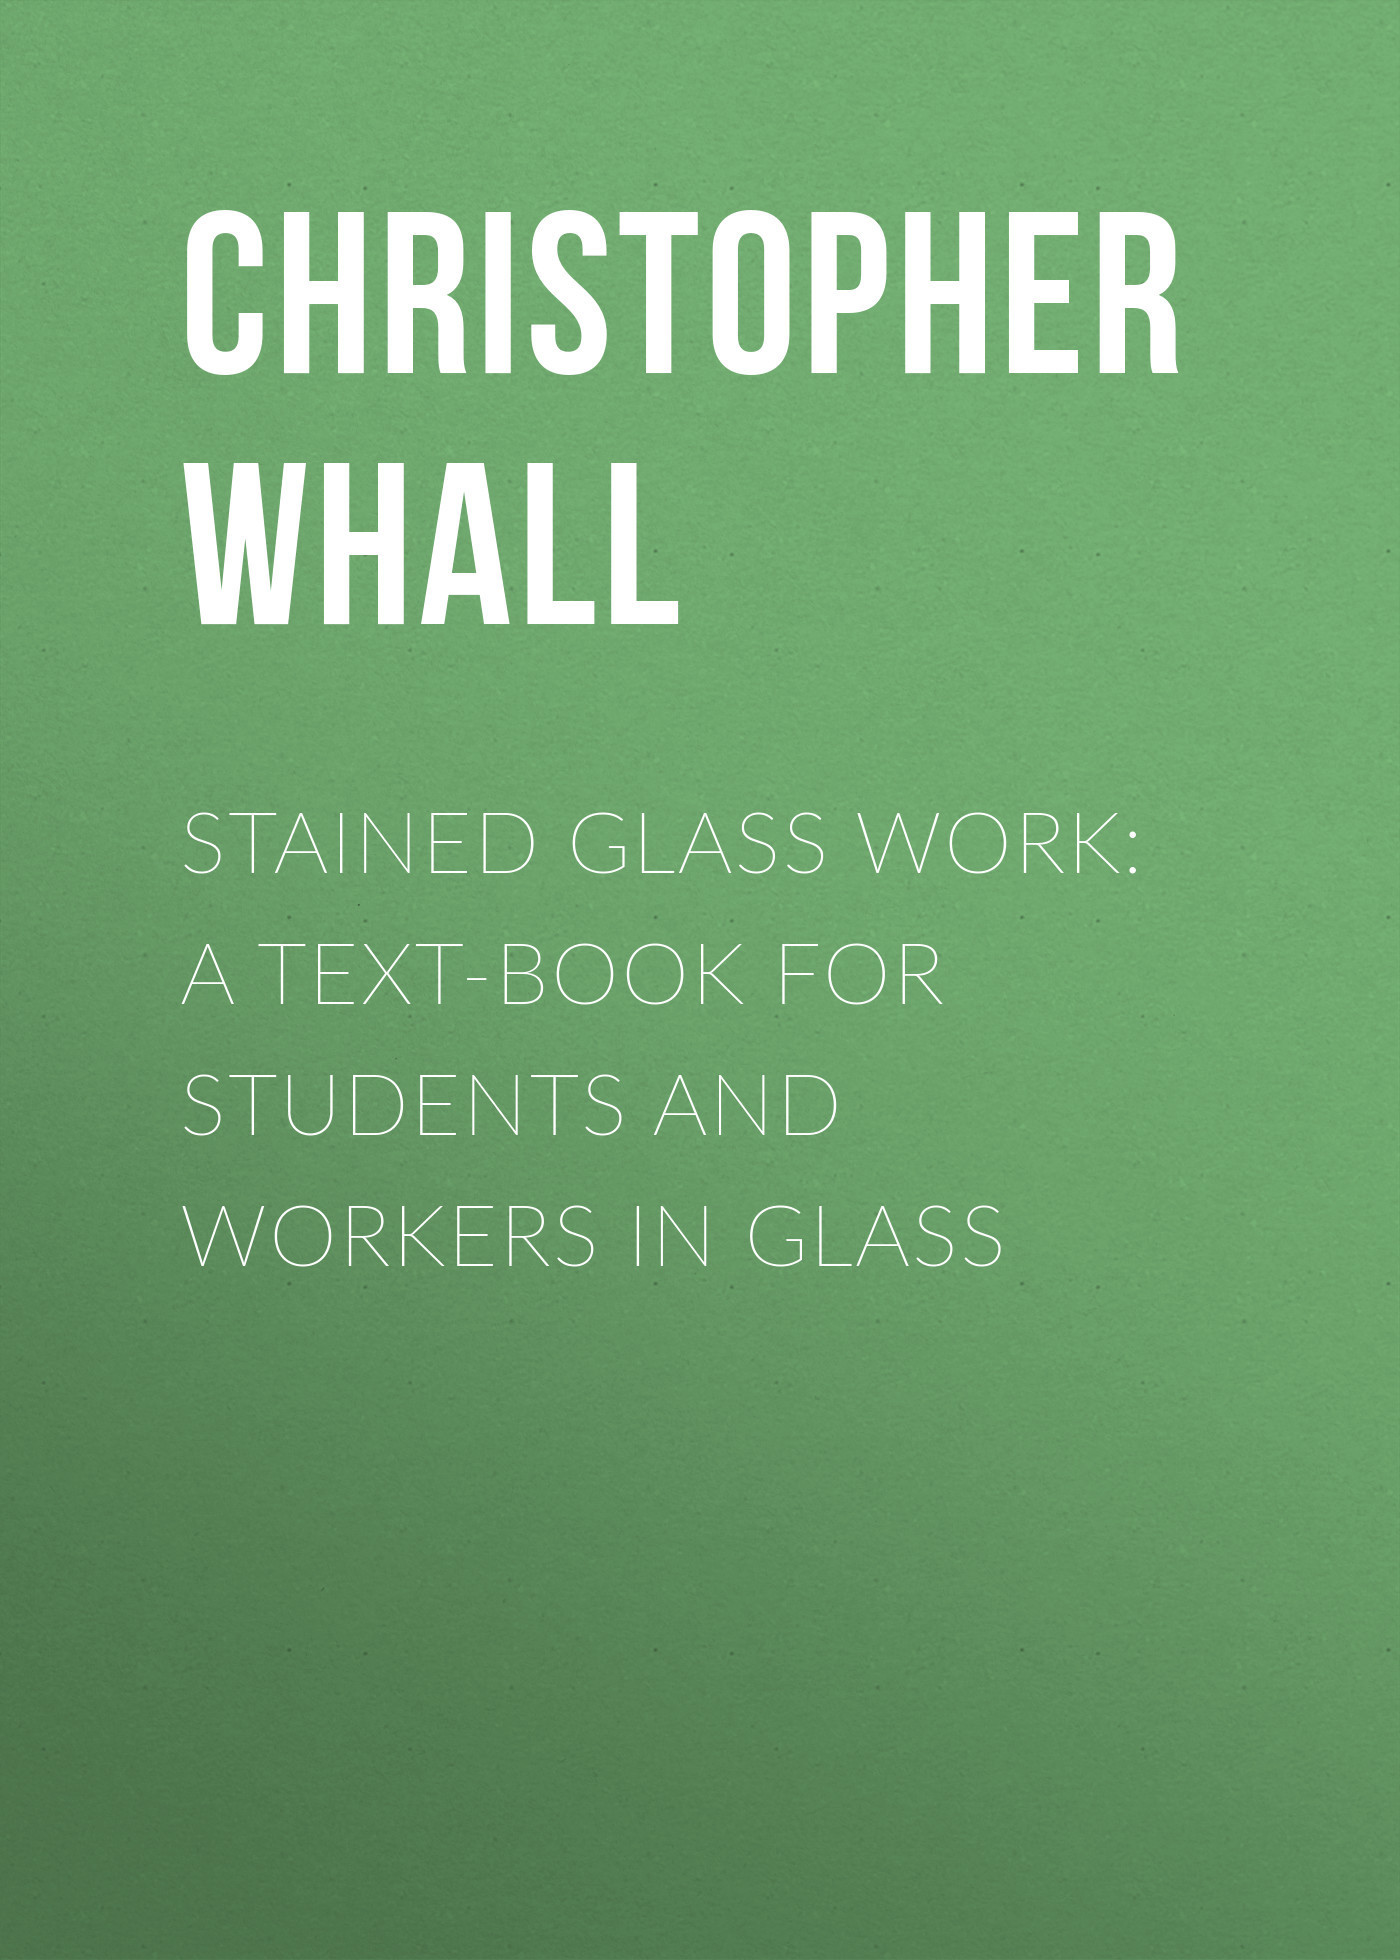 Christopher Whall Stained Glass Work: A text-book for students and workers in glass 5 mediterranean tiffany flower hanging lights vintage stained glass shell bar cafe hallway ceiling lamp fixtures lighting cl254